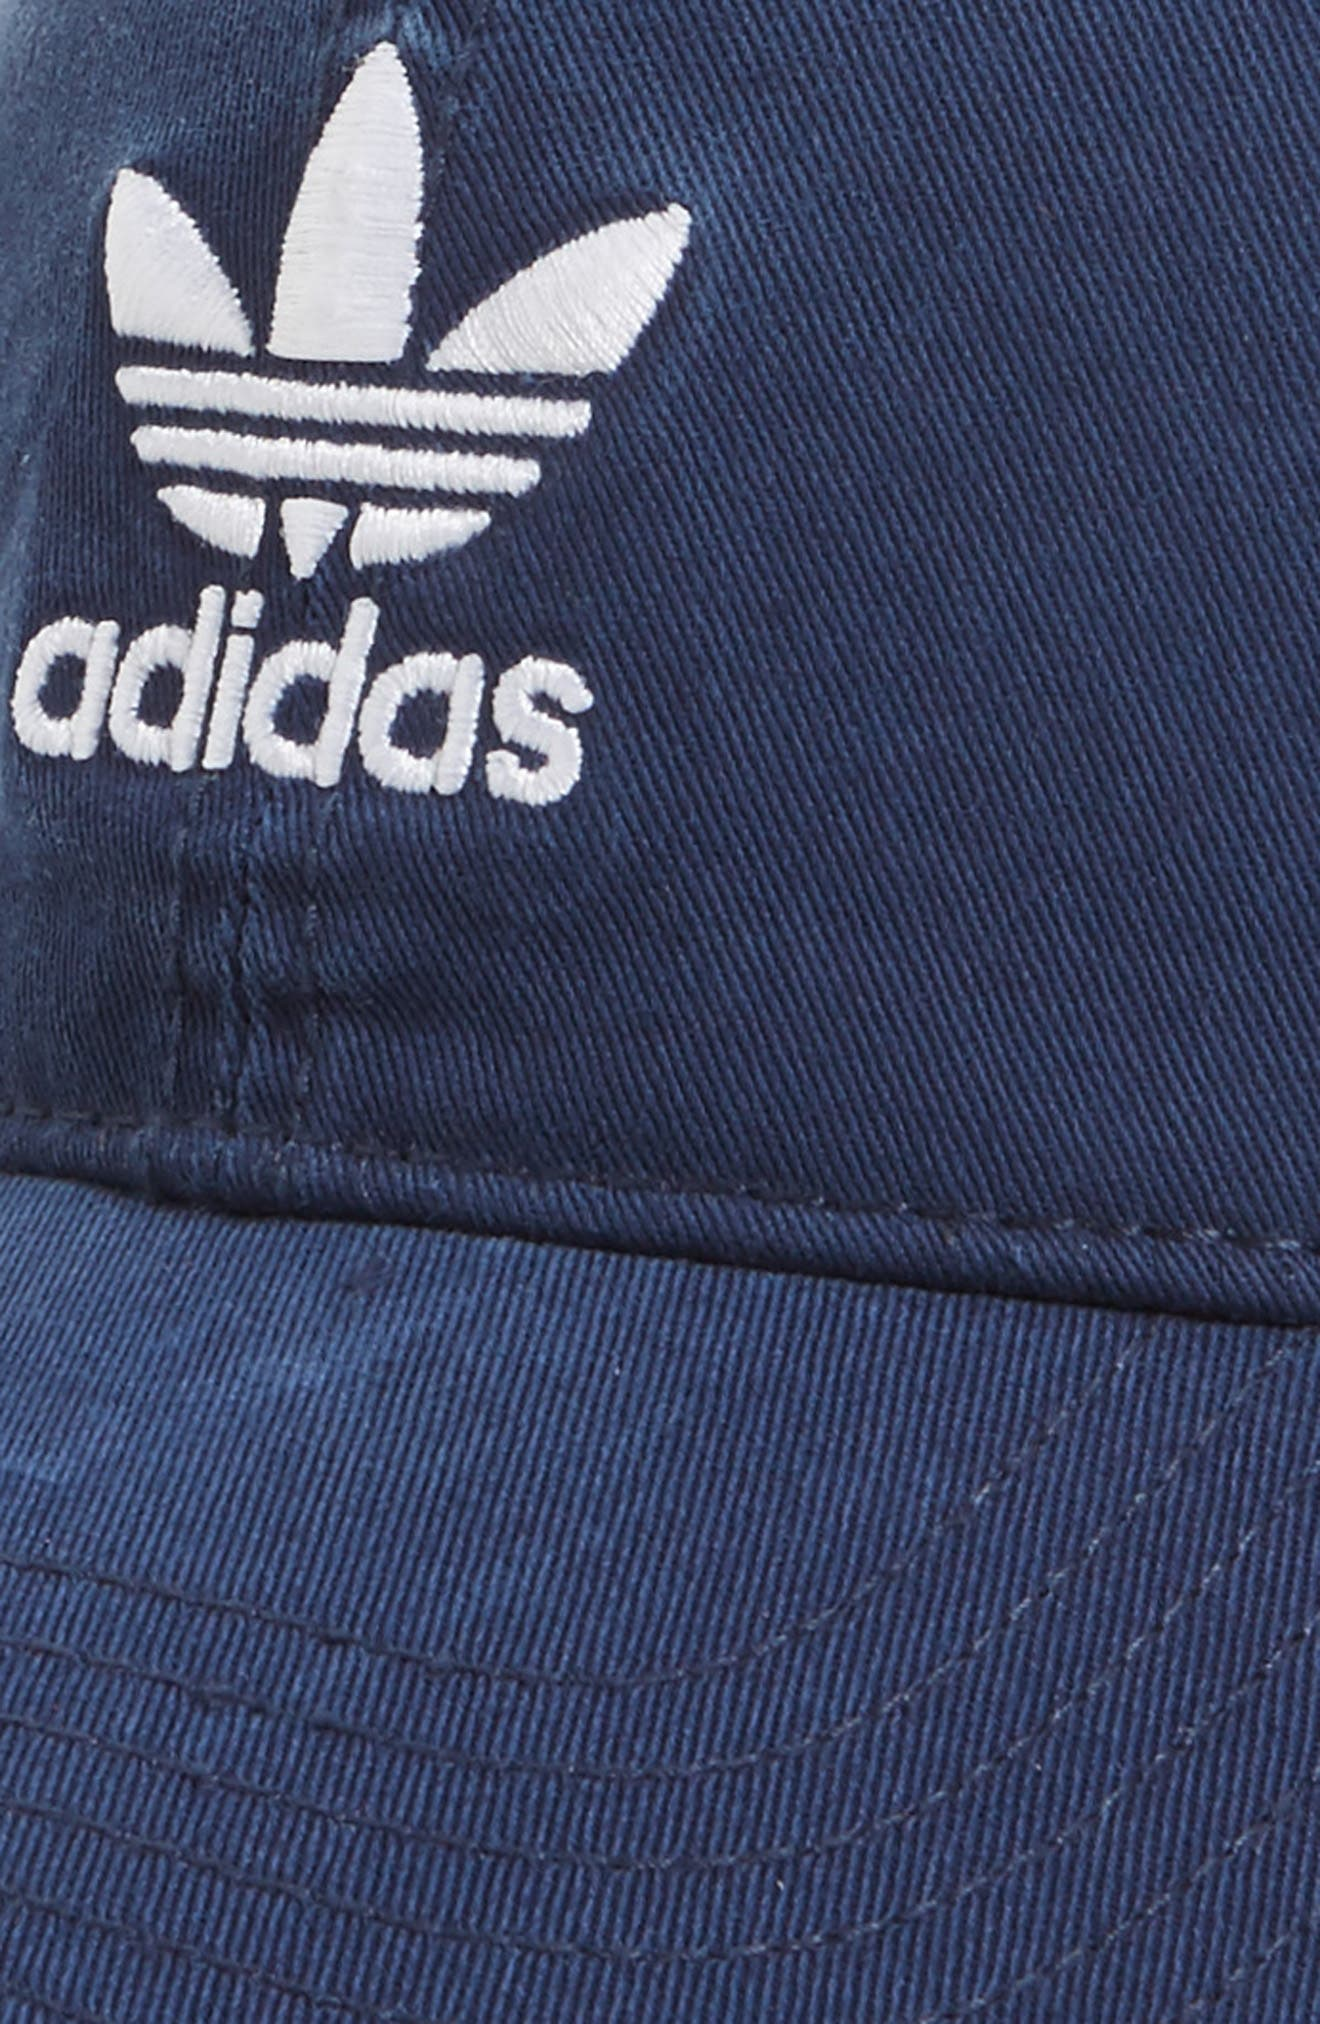 Relaxed Baseball Cap,                             Alternate thumbnail 3, color,                             NAVY